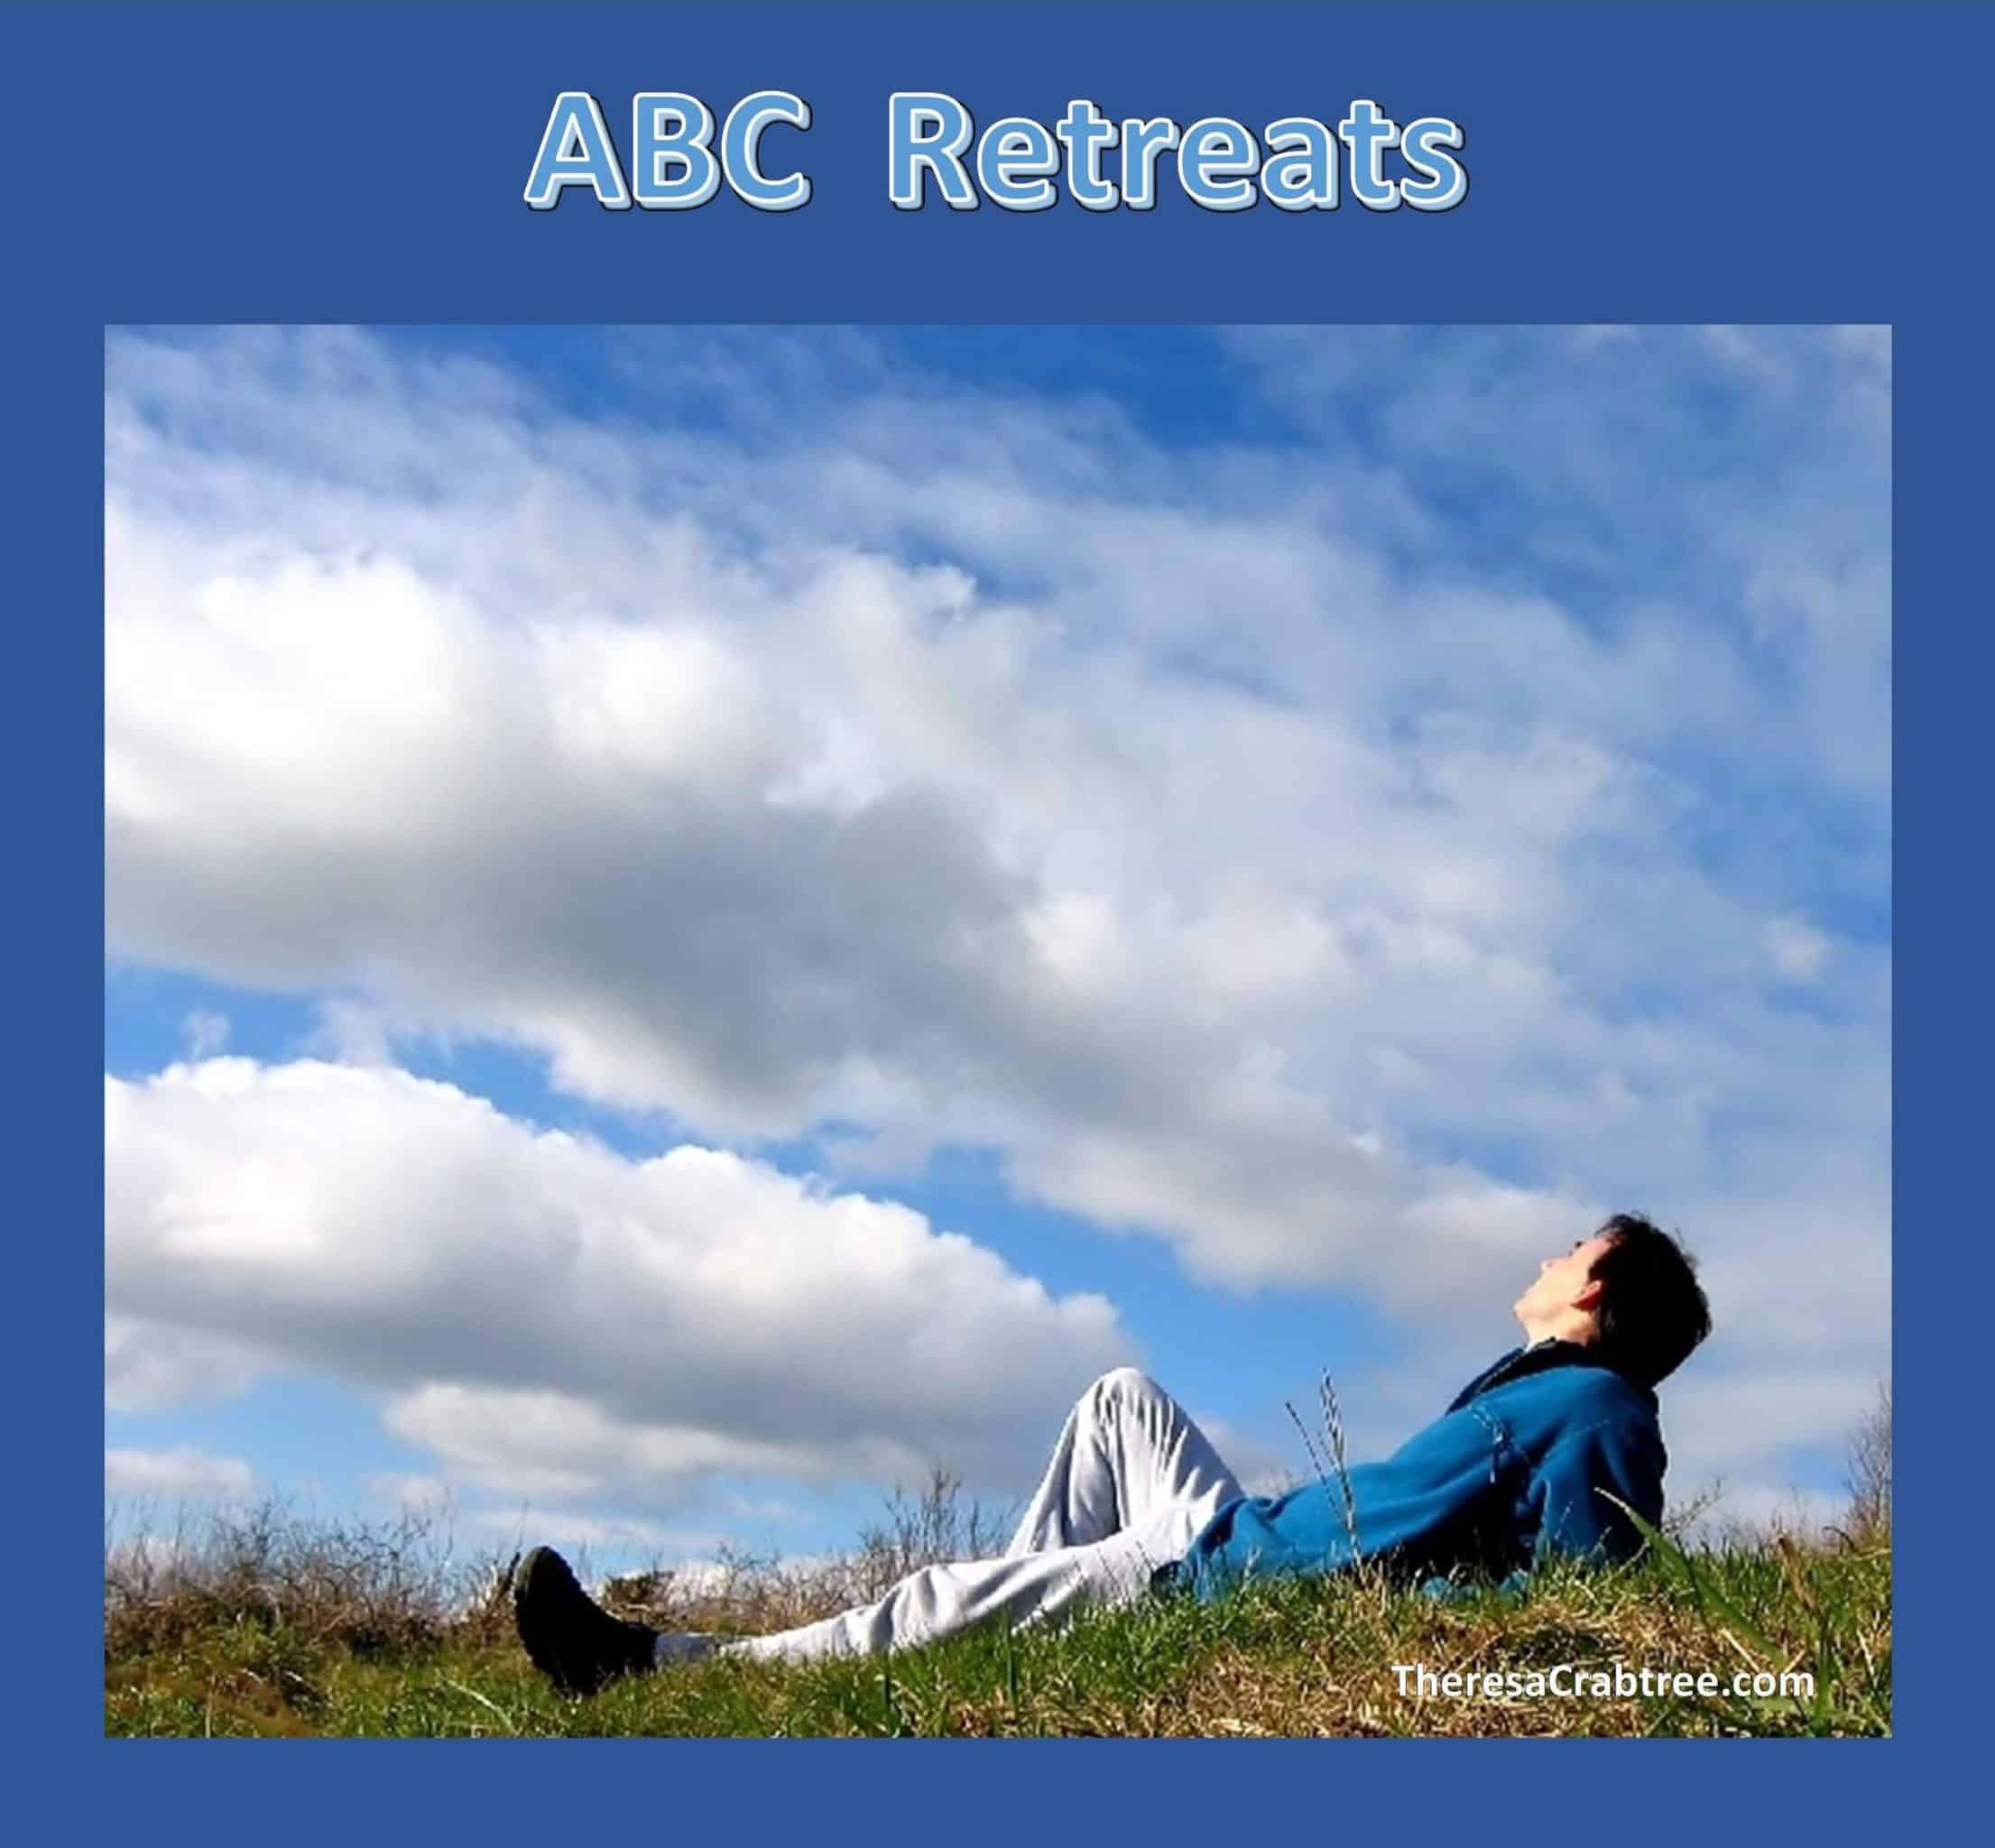 ABC RETREATS Treat yourself to a little retreat. It doesn't take time, money or energy to have a w